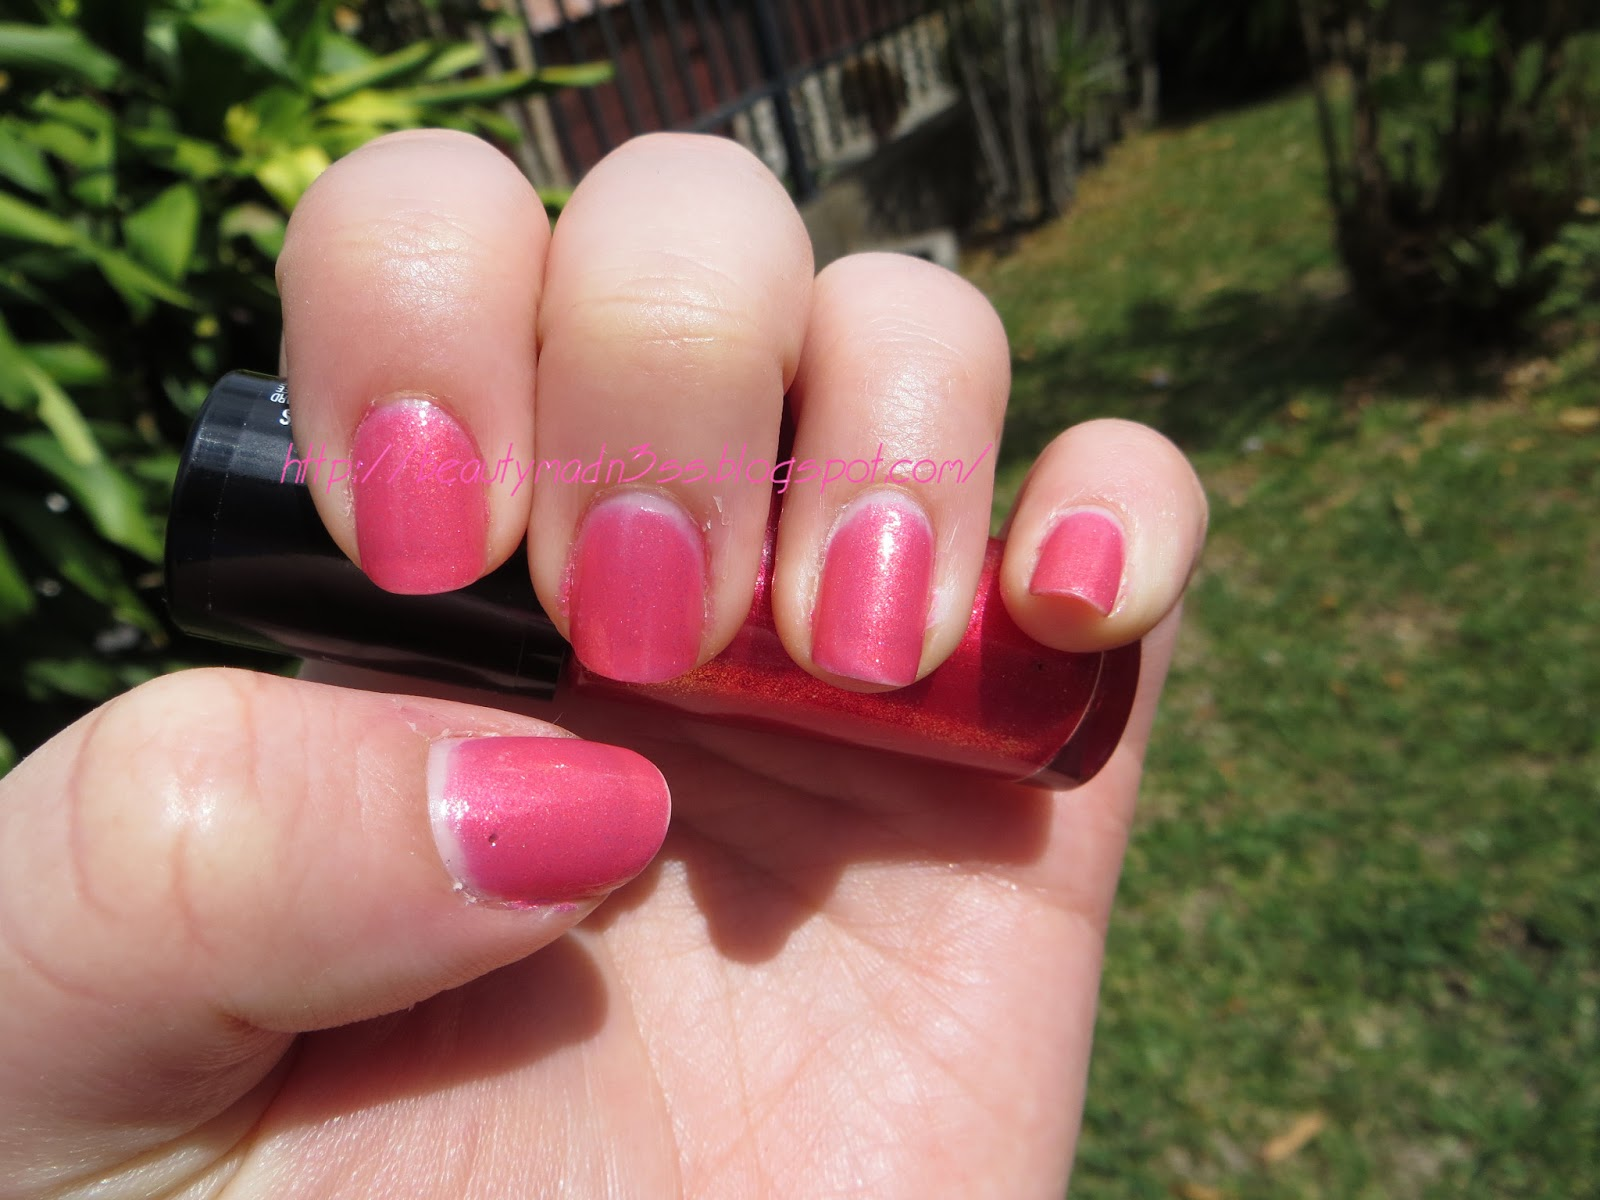 Hard Candy Little Bo Pink swatch